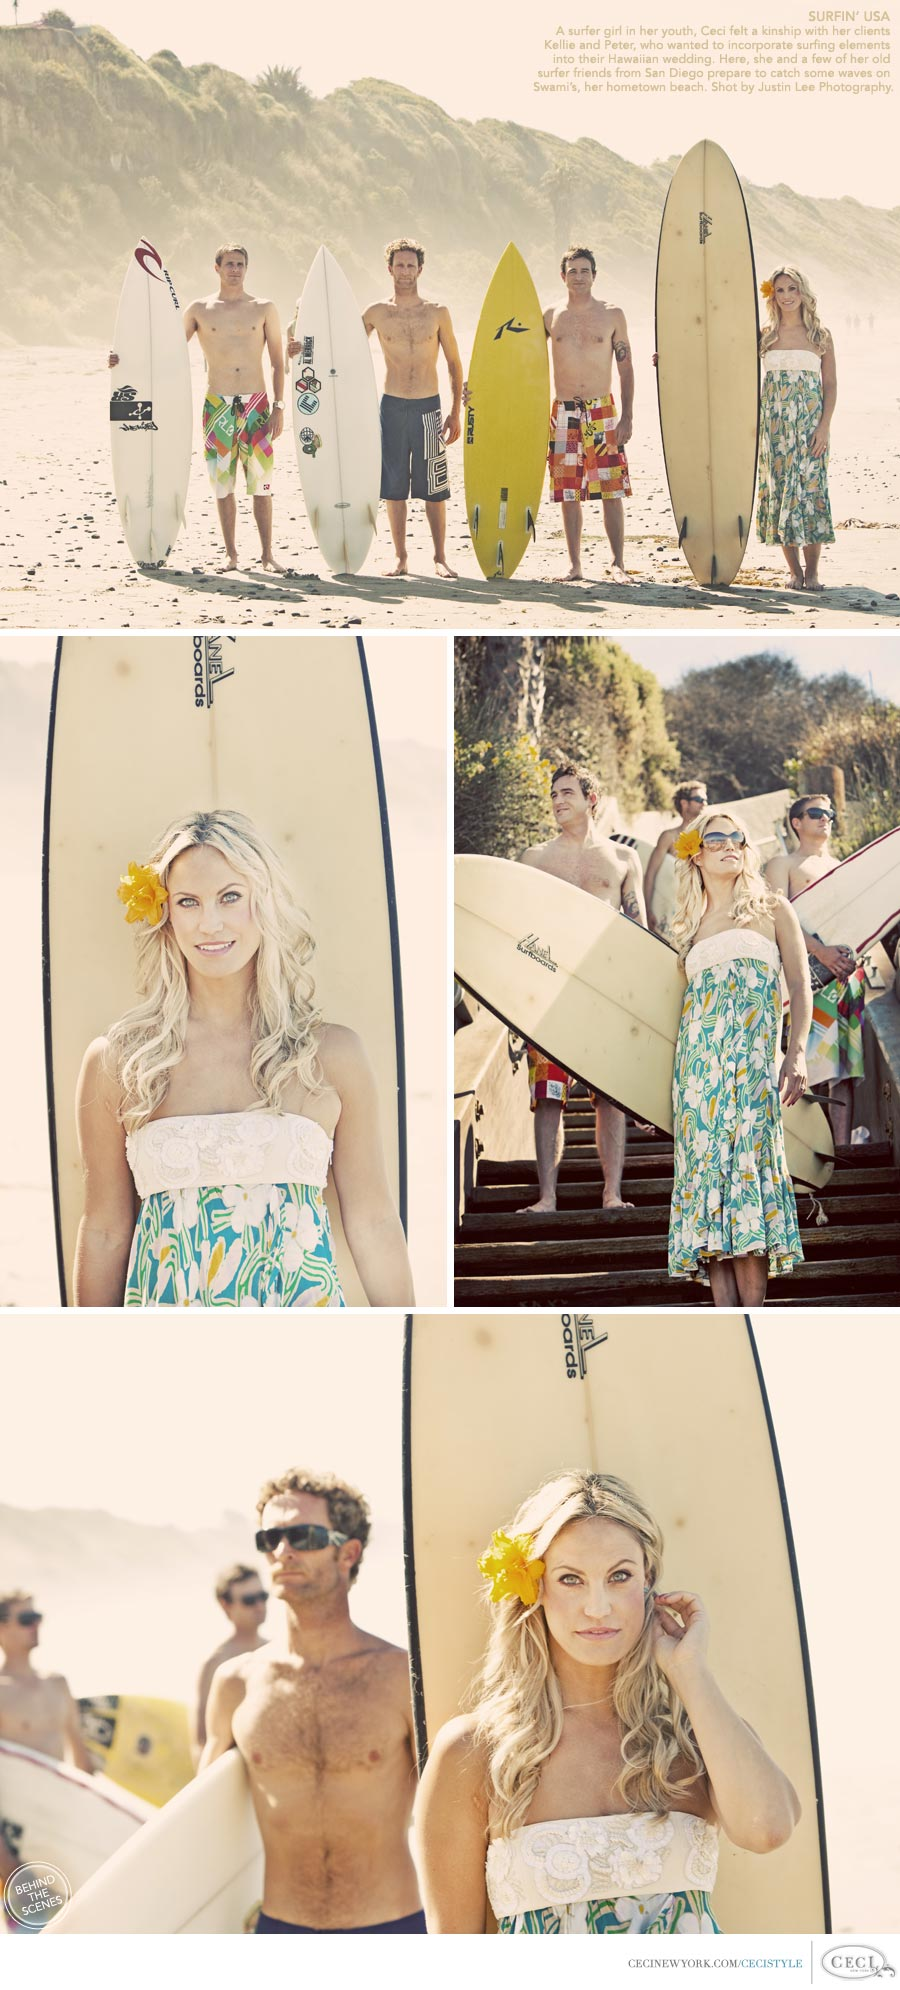 Ceci Johnson of Ceci New York - SURFIN' USA: A surfer girl in her youth, Ceci felt a kinship with her clients Kellie and Peter, who wanted to incorporate surfing elements into their Hawaiian wedding. Here, she and a few of her old surfer friends from San Diego prepare to catch some waves on Swami's, her hometown beach. Shot by Justin Lee Photography.